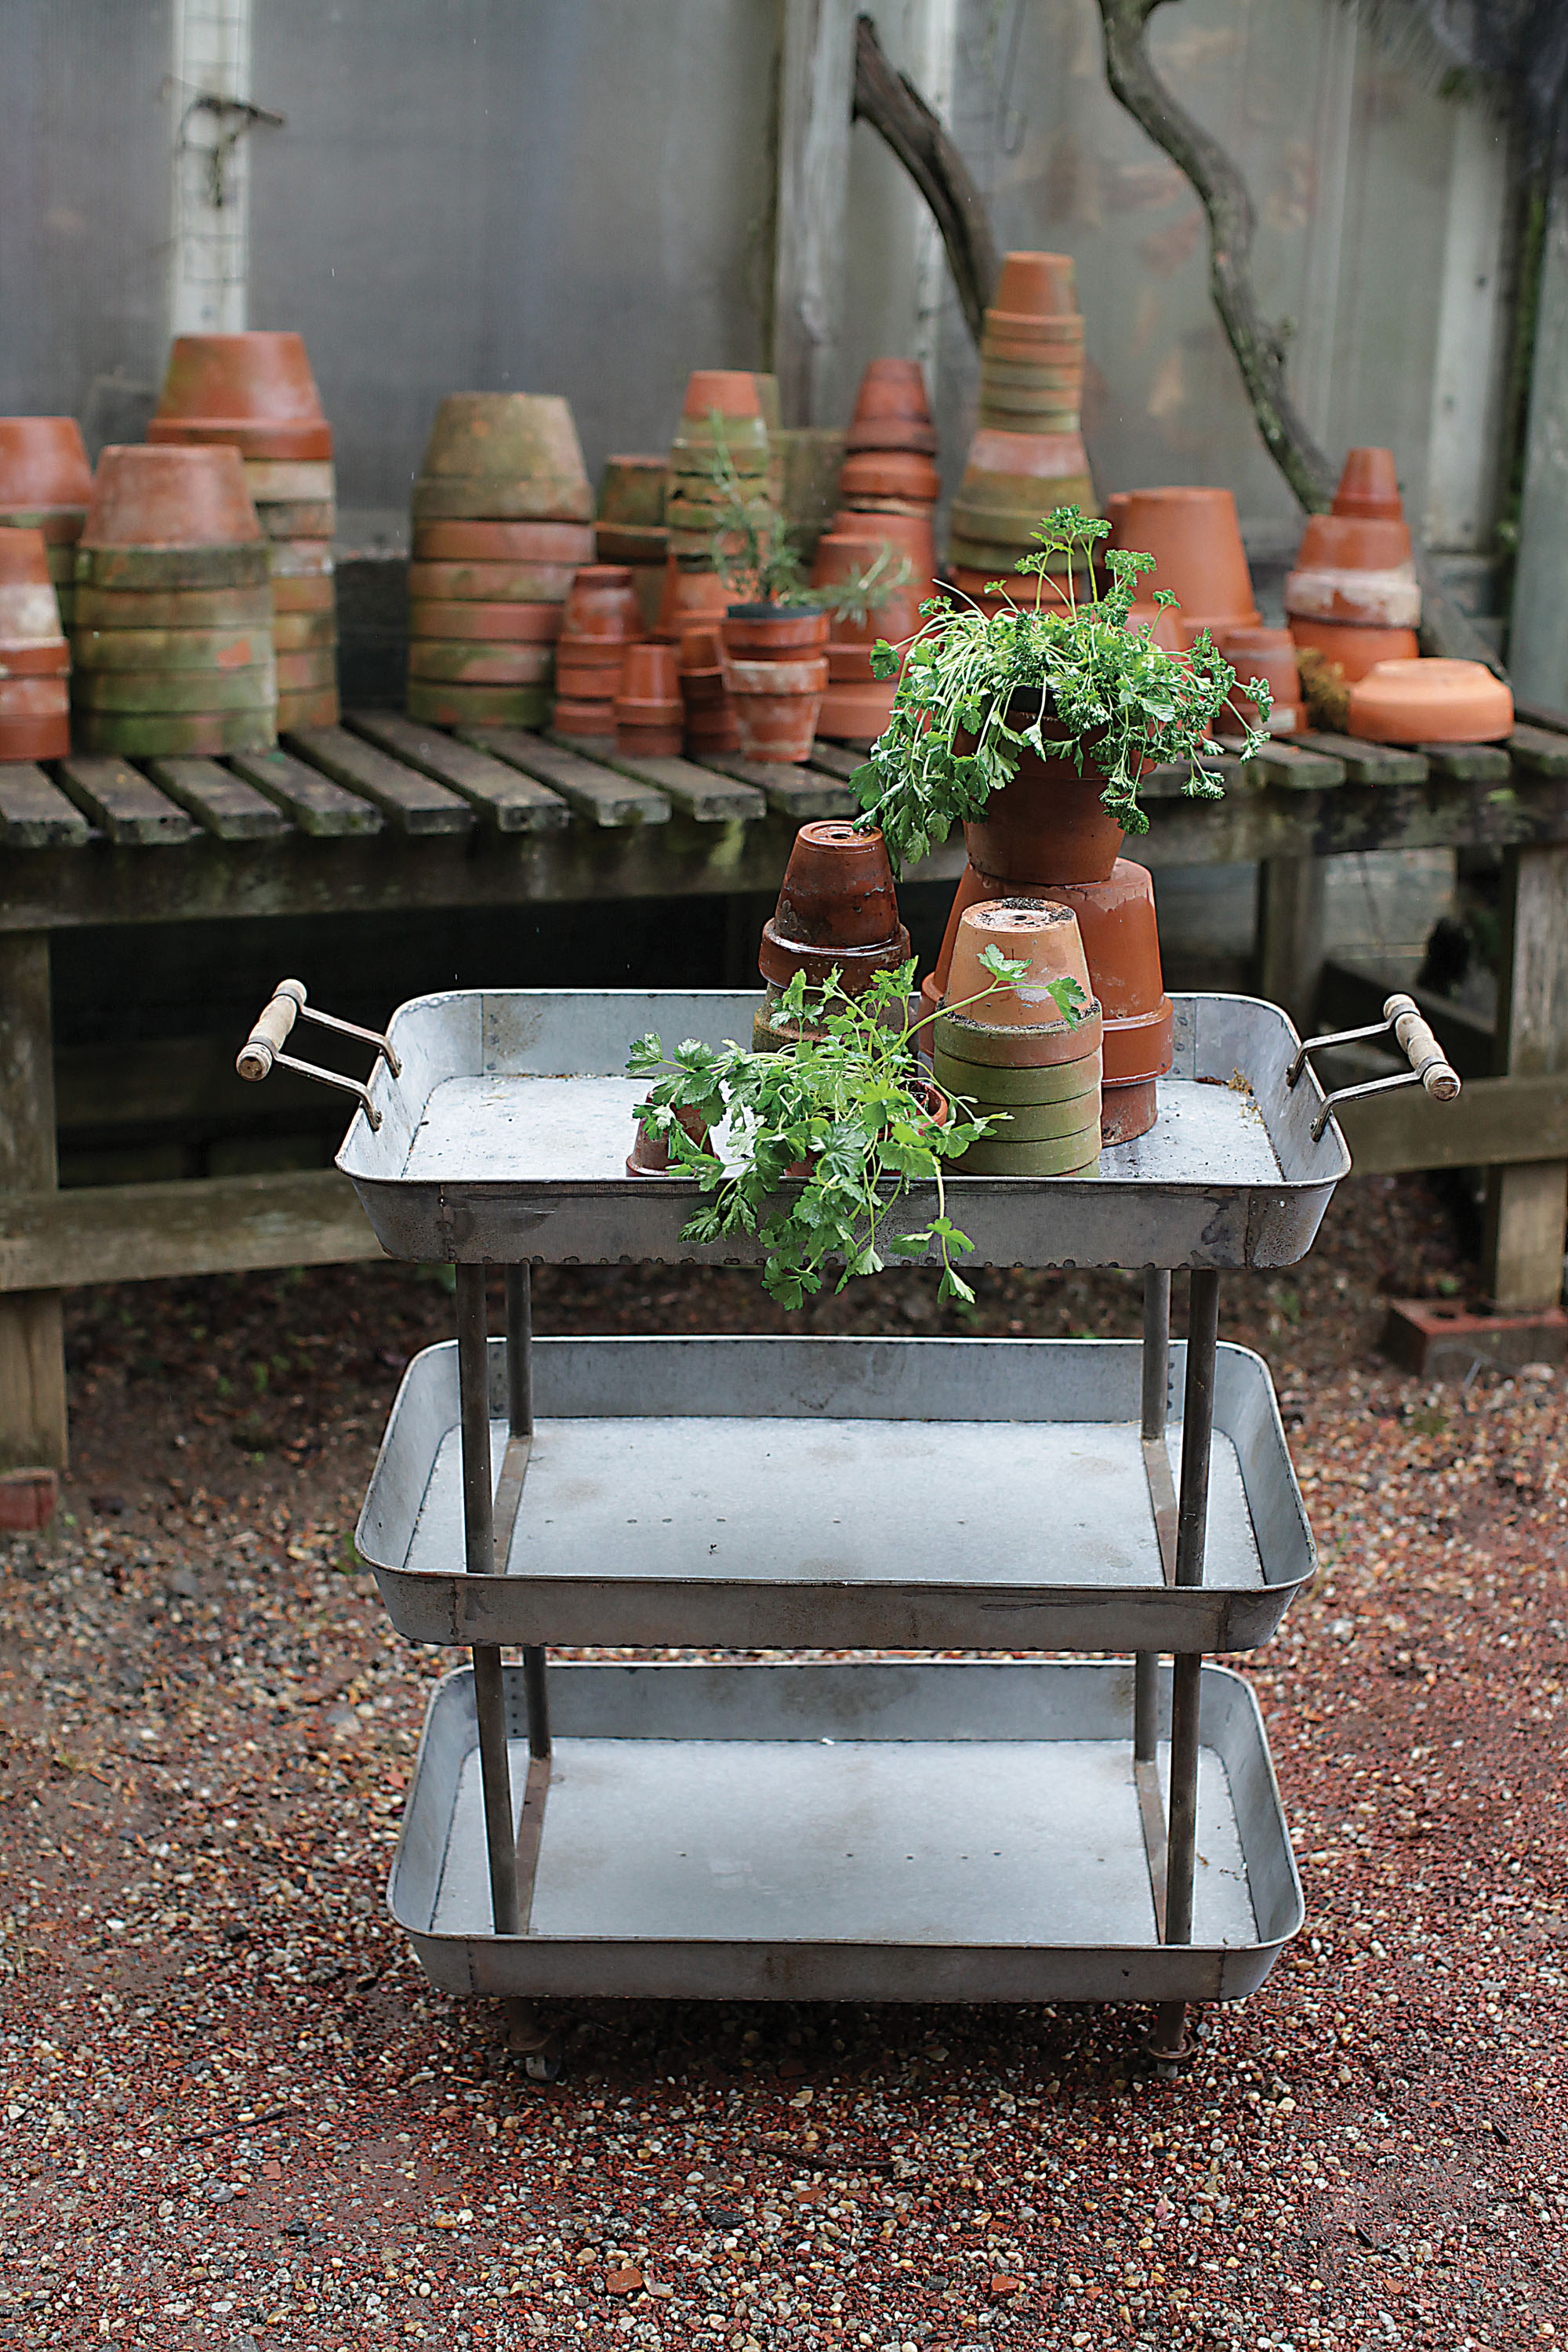 Galvanized metal three tier cart from Vintage American Home online store